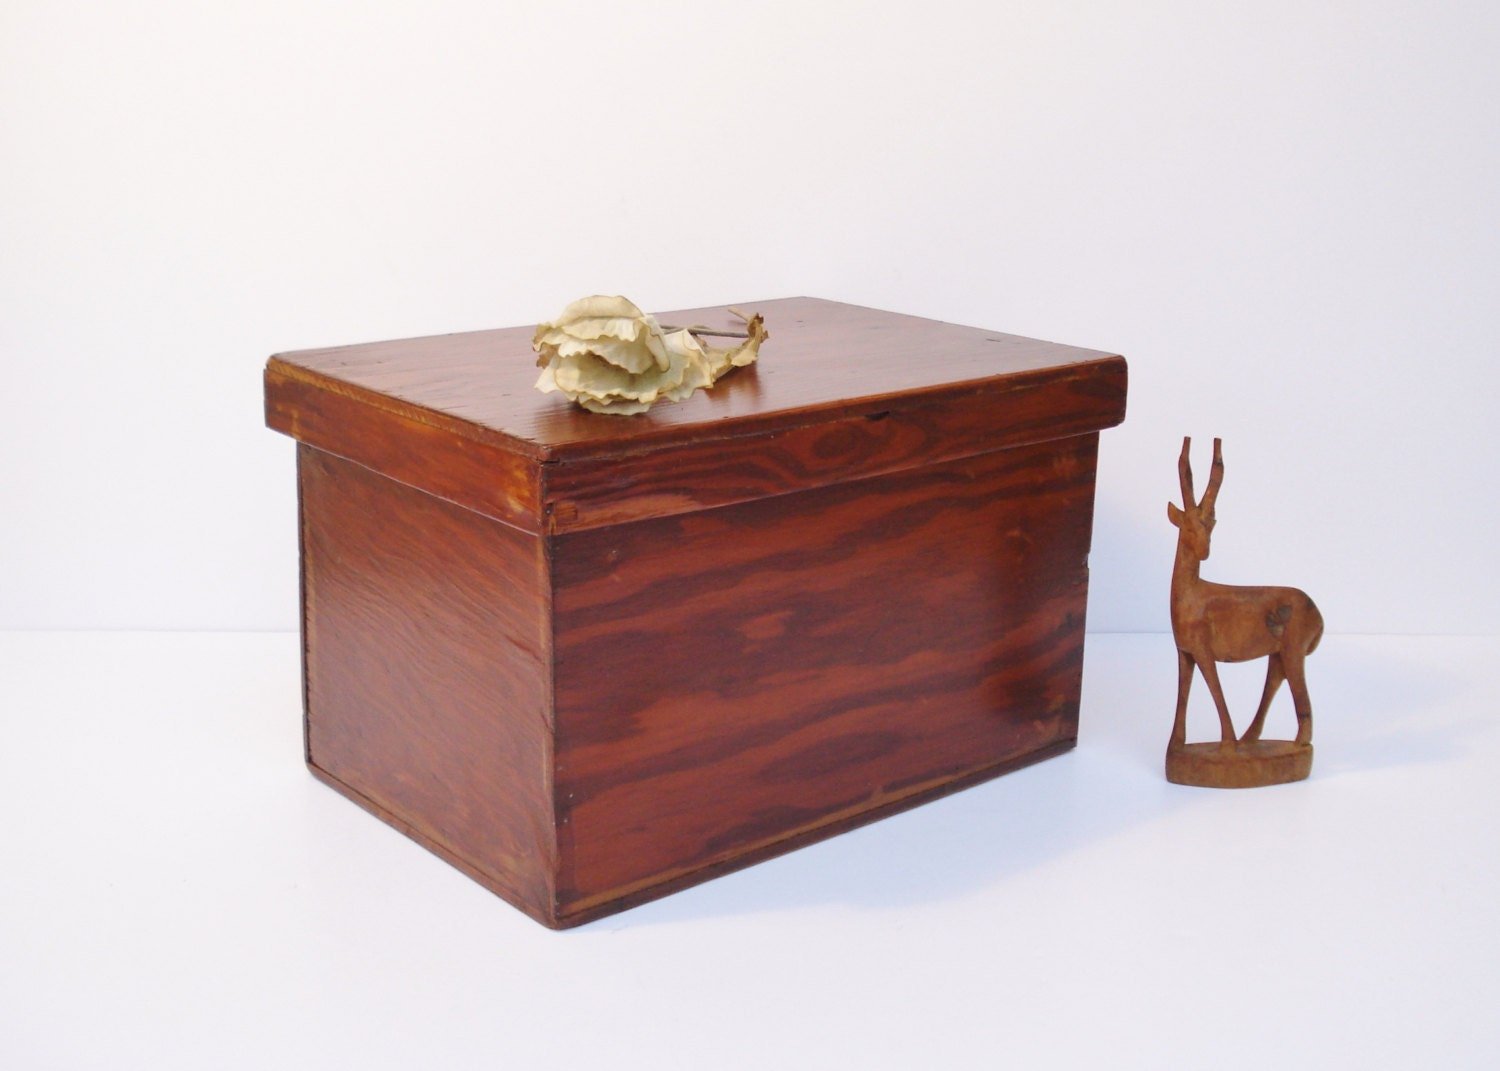 Vintage 1940s Hand Made Wooden Storage Box Storage Box With